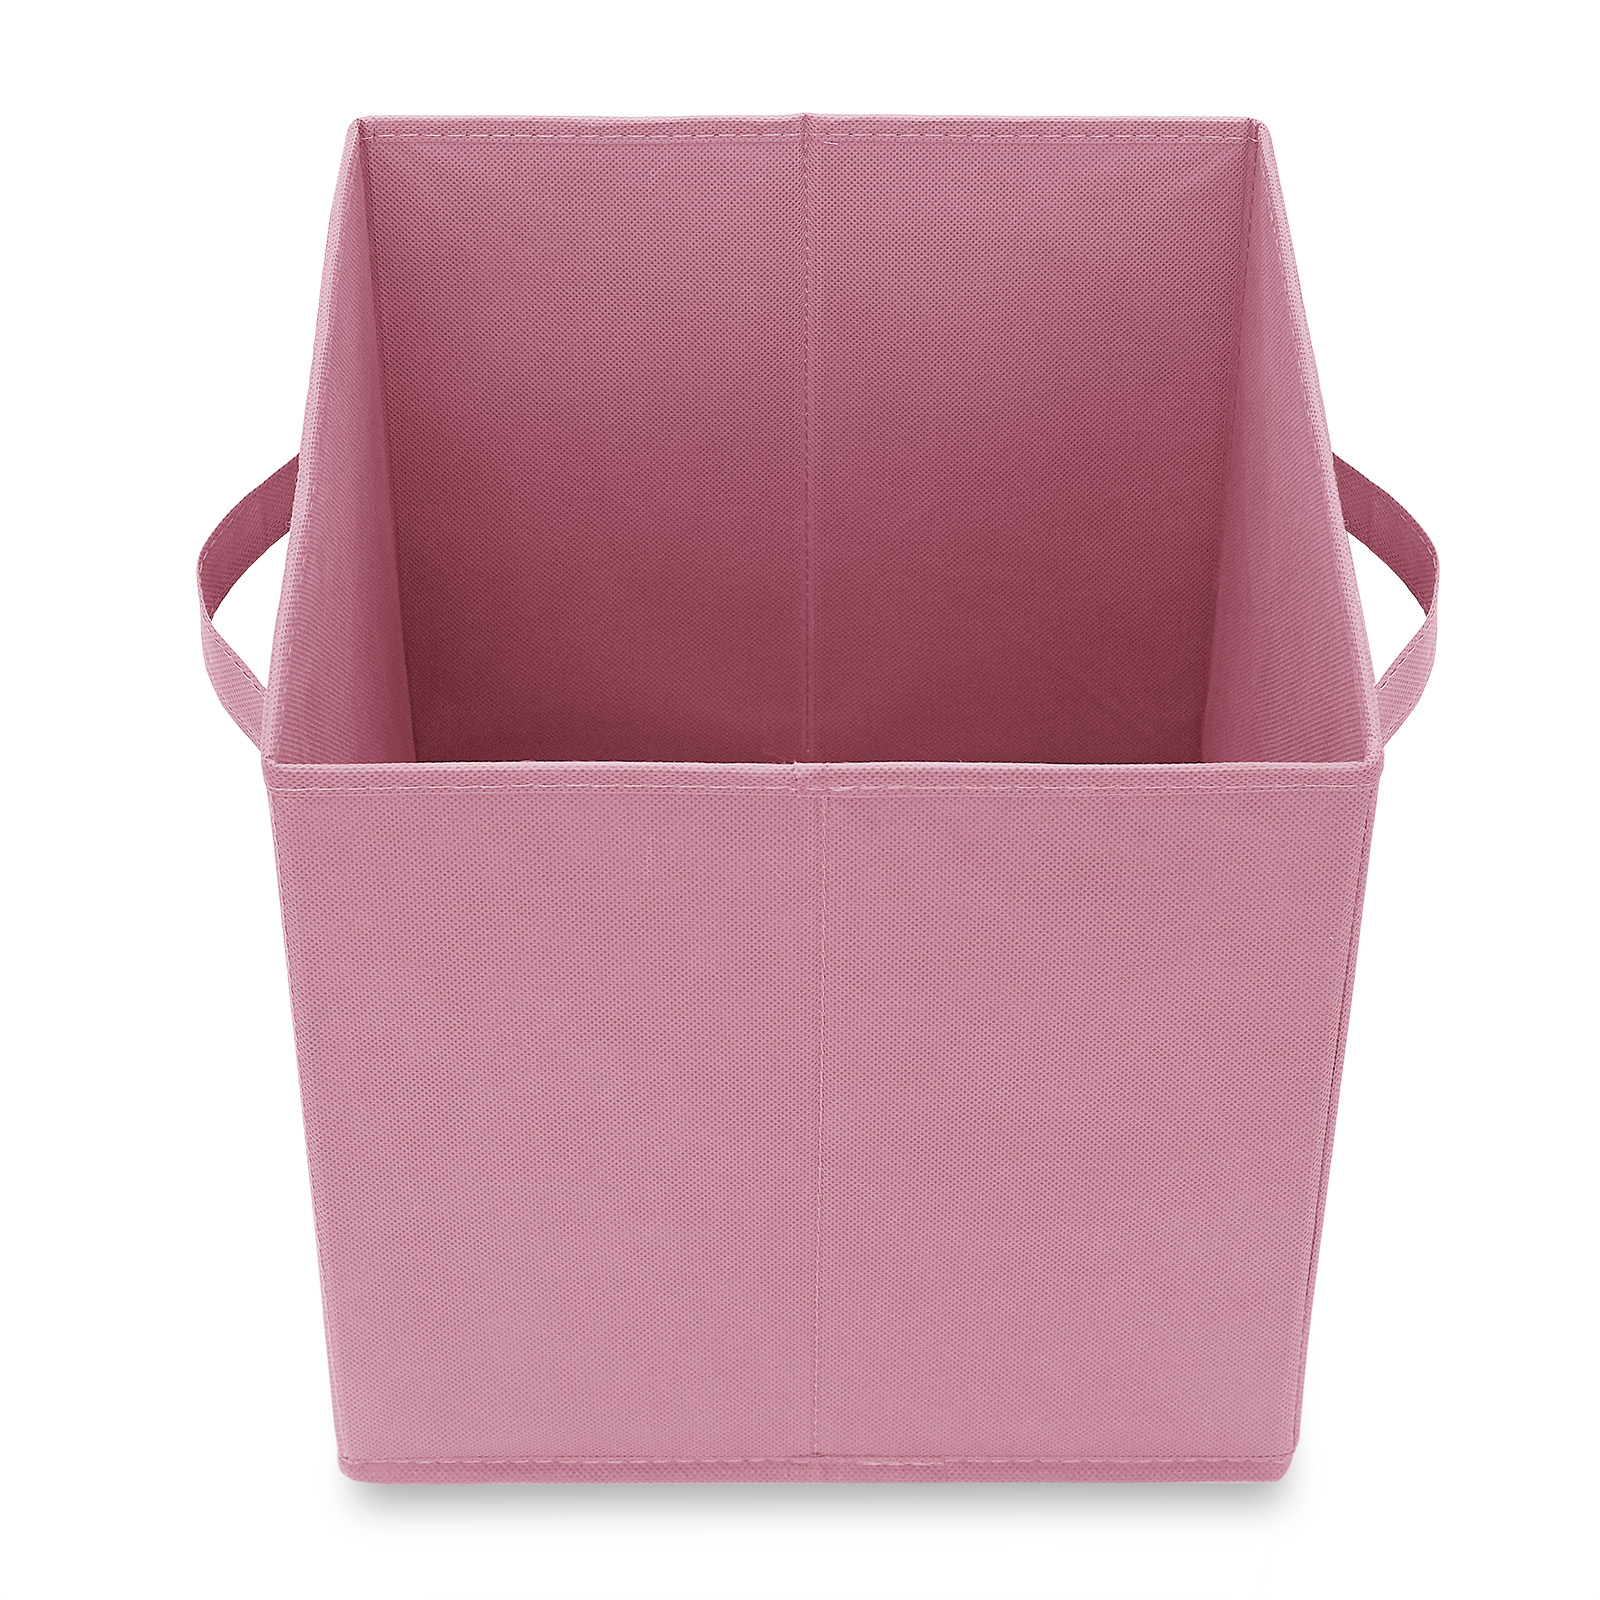 6-Collapsible-Foldable-Cloth-Fabric-Cubby-Cube-Storage-Bins-Baskets-for-Shelves thumbnail 38